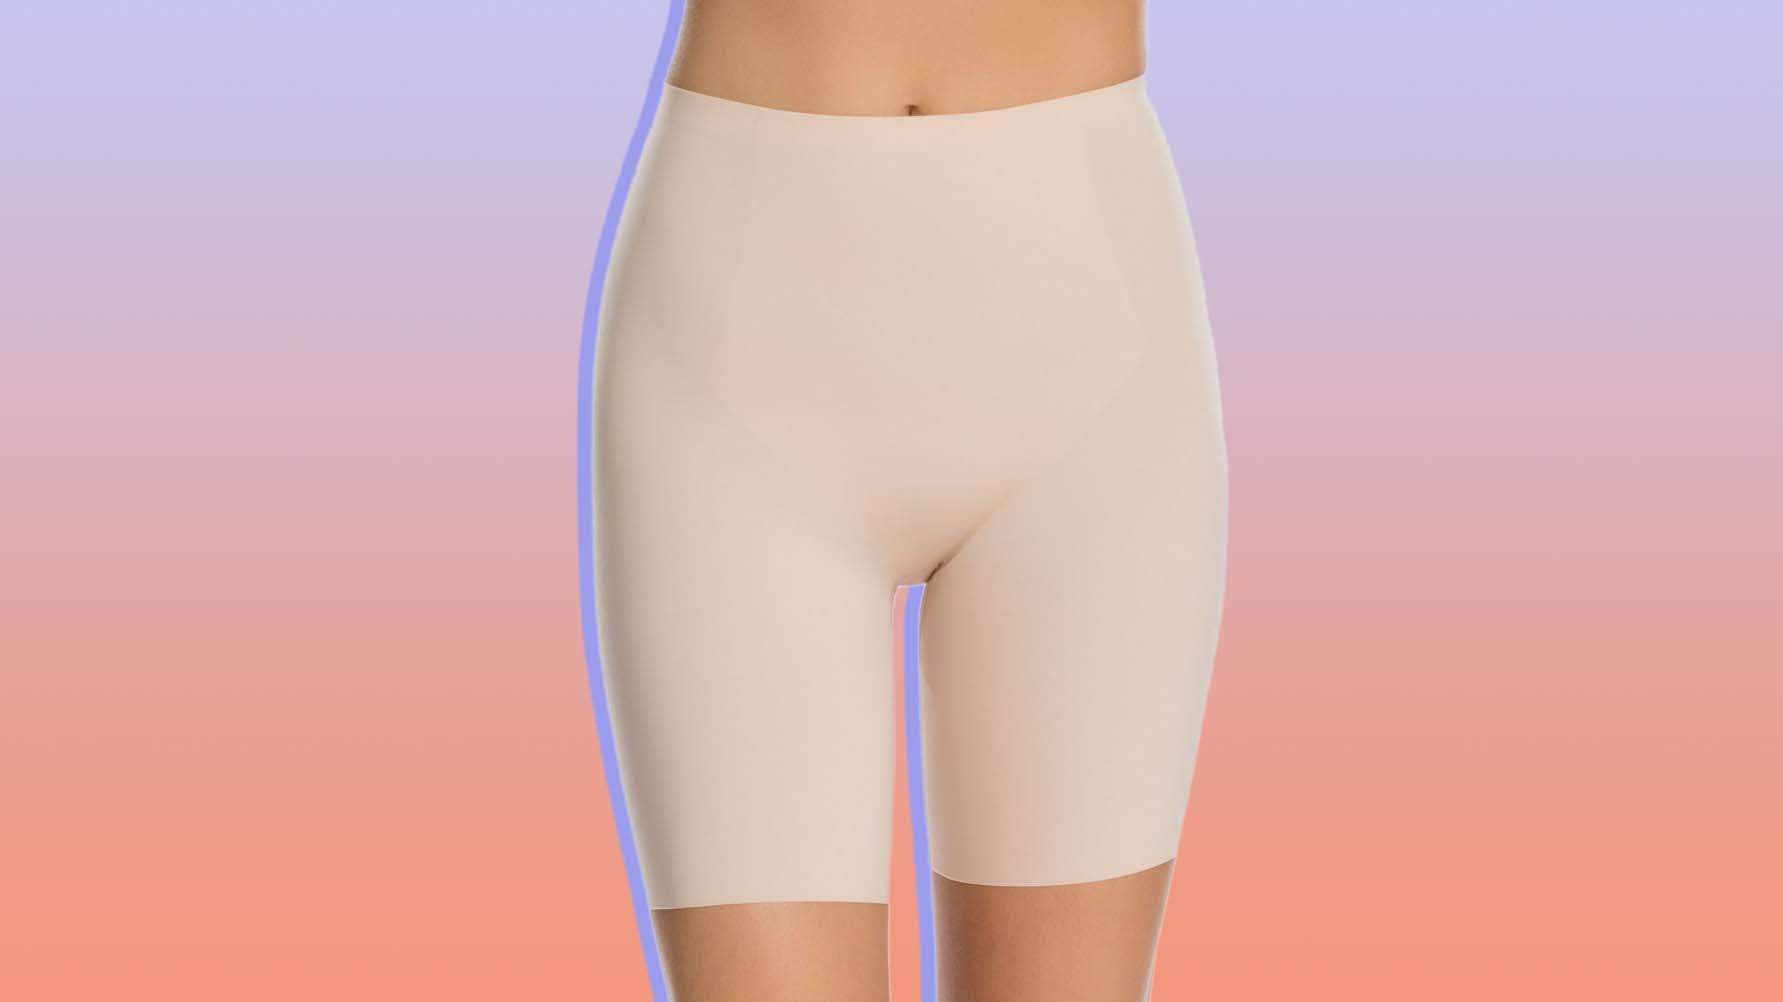 Giveaway No Human Verification  Shapewear Spanx